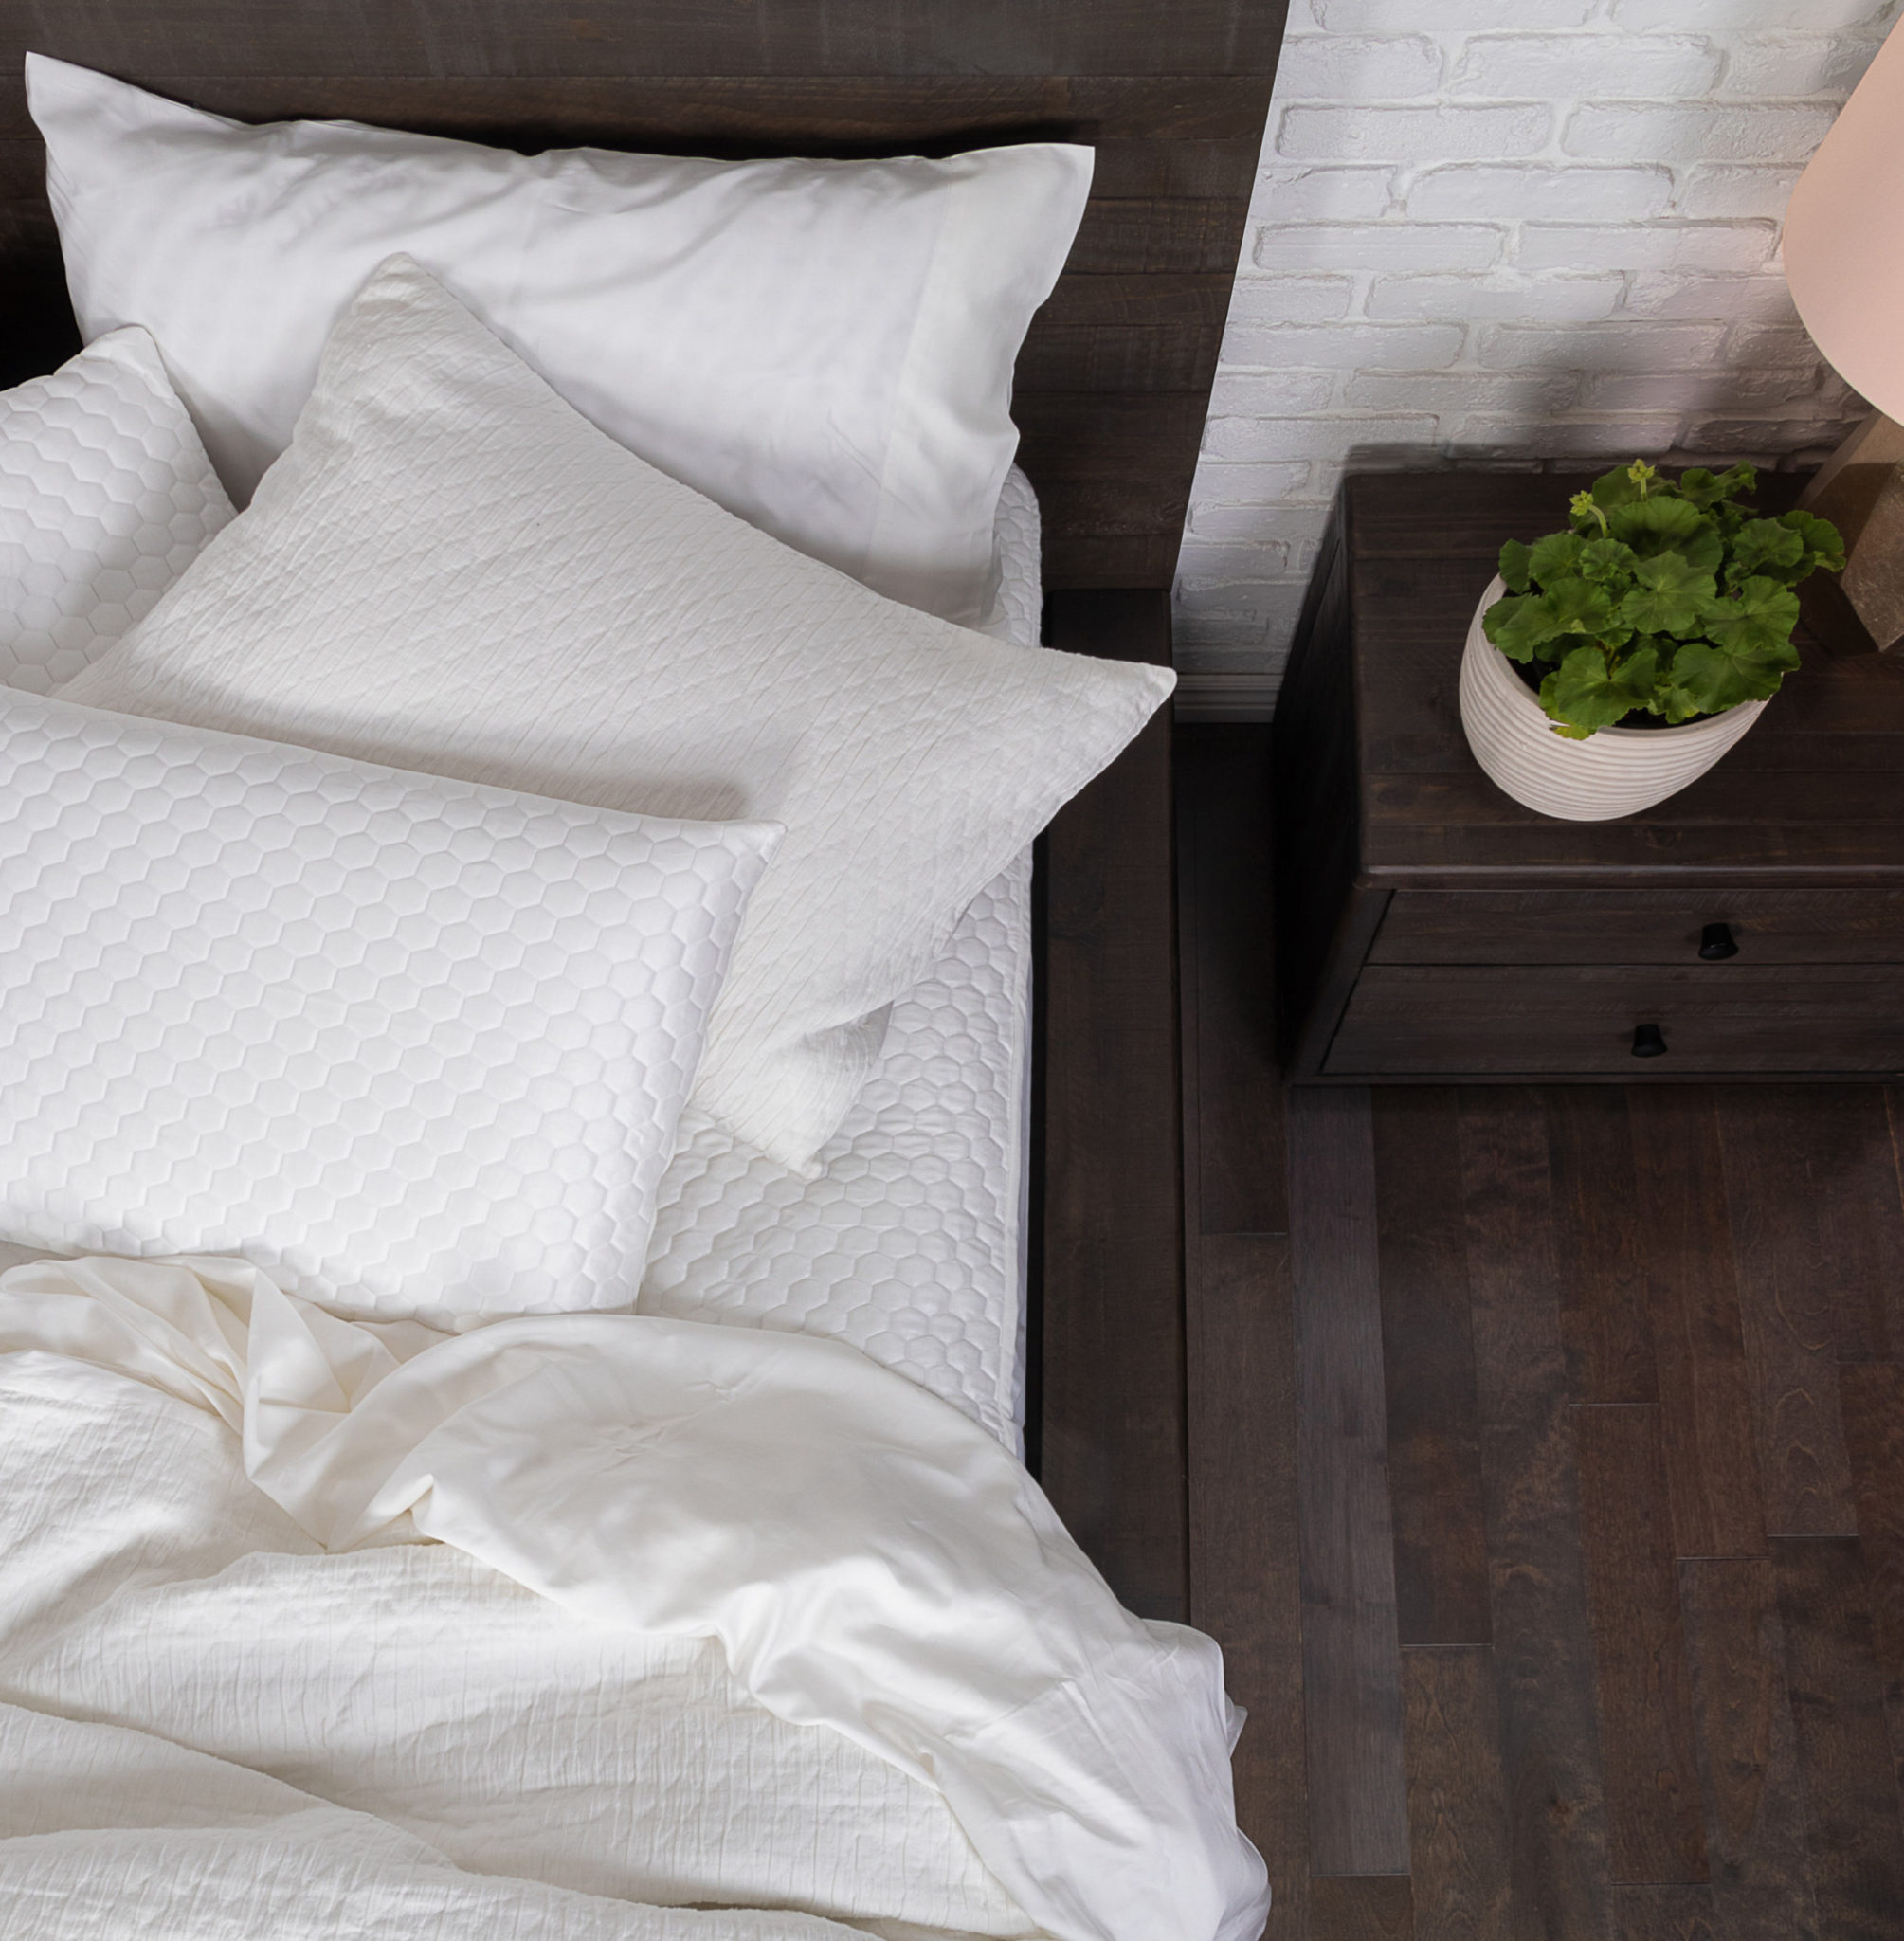 best sheets for allergies